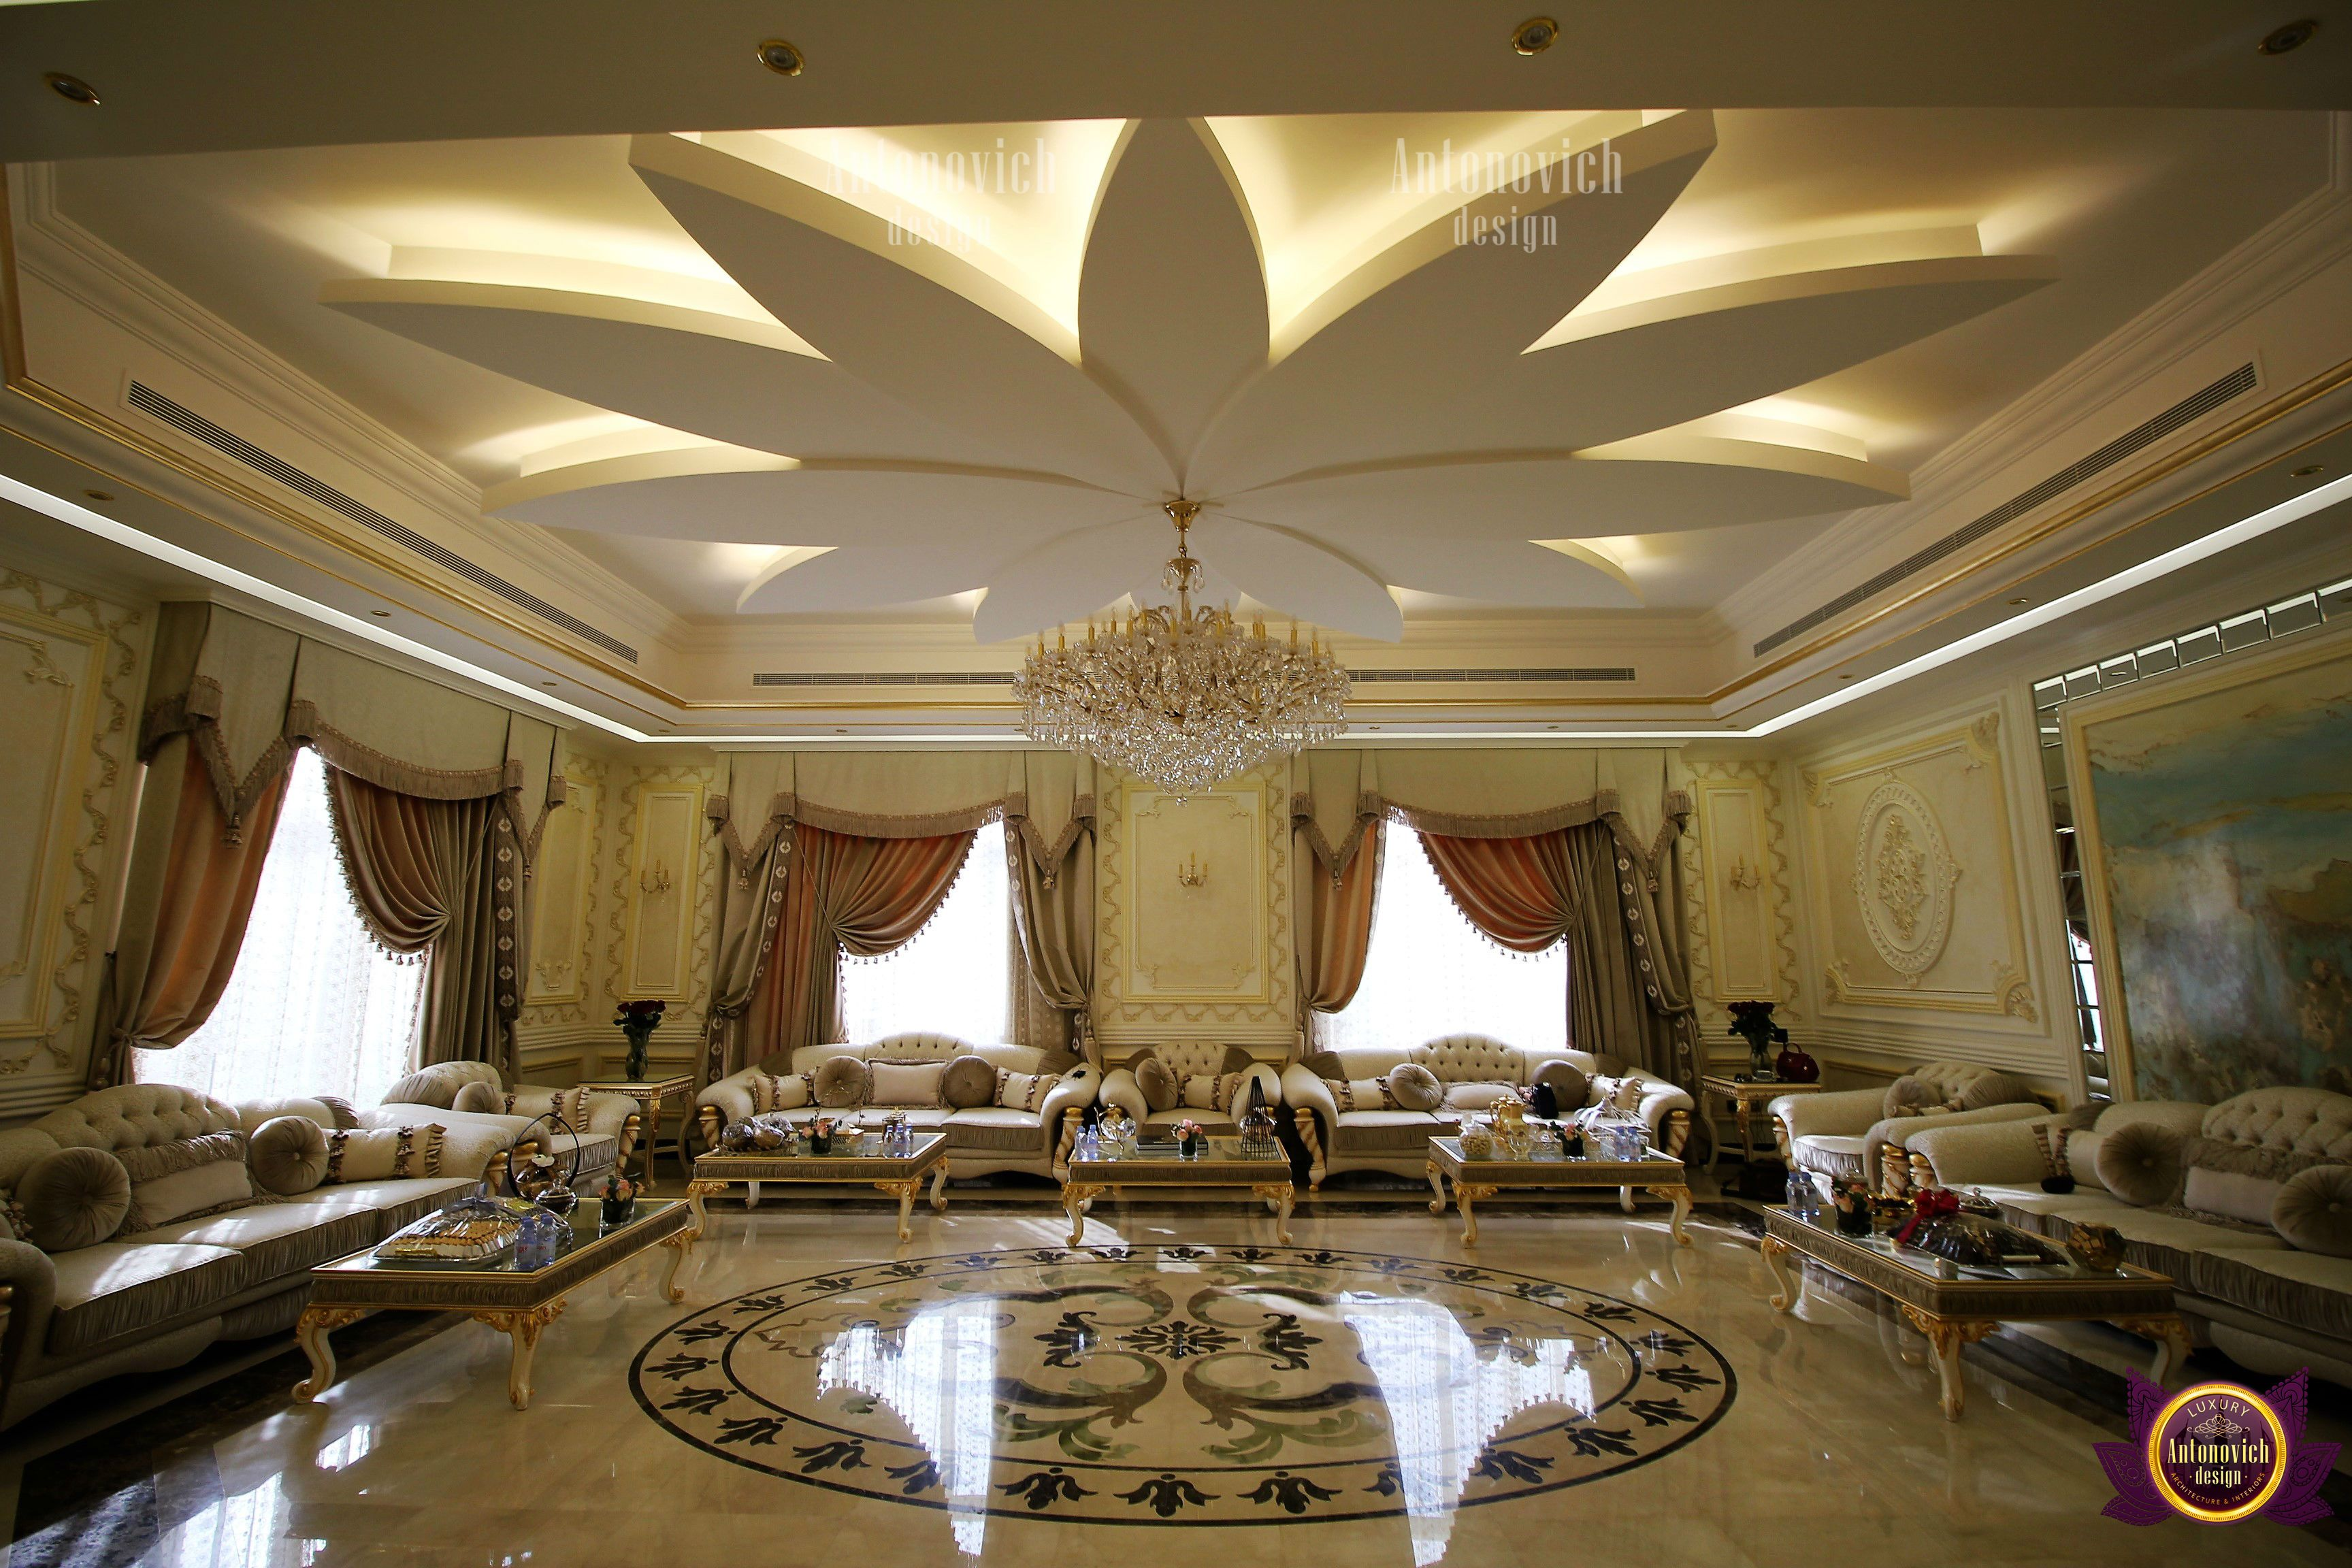 Have You Ever Seen Such A Marvelous And Majestic Luxurious Place Like This Royal Sitting Room Now Luxury Ceiling Design Ceiling Design Bedroom Celling Design